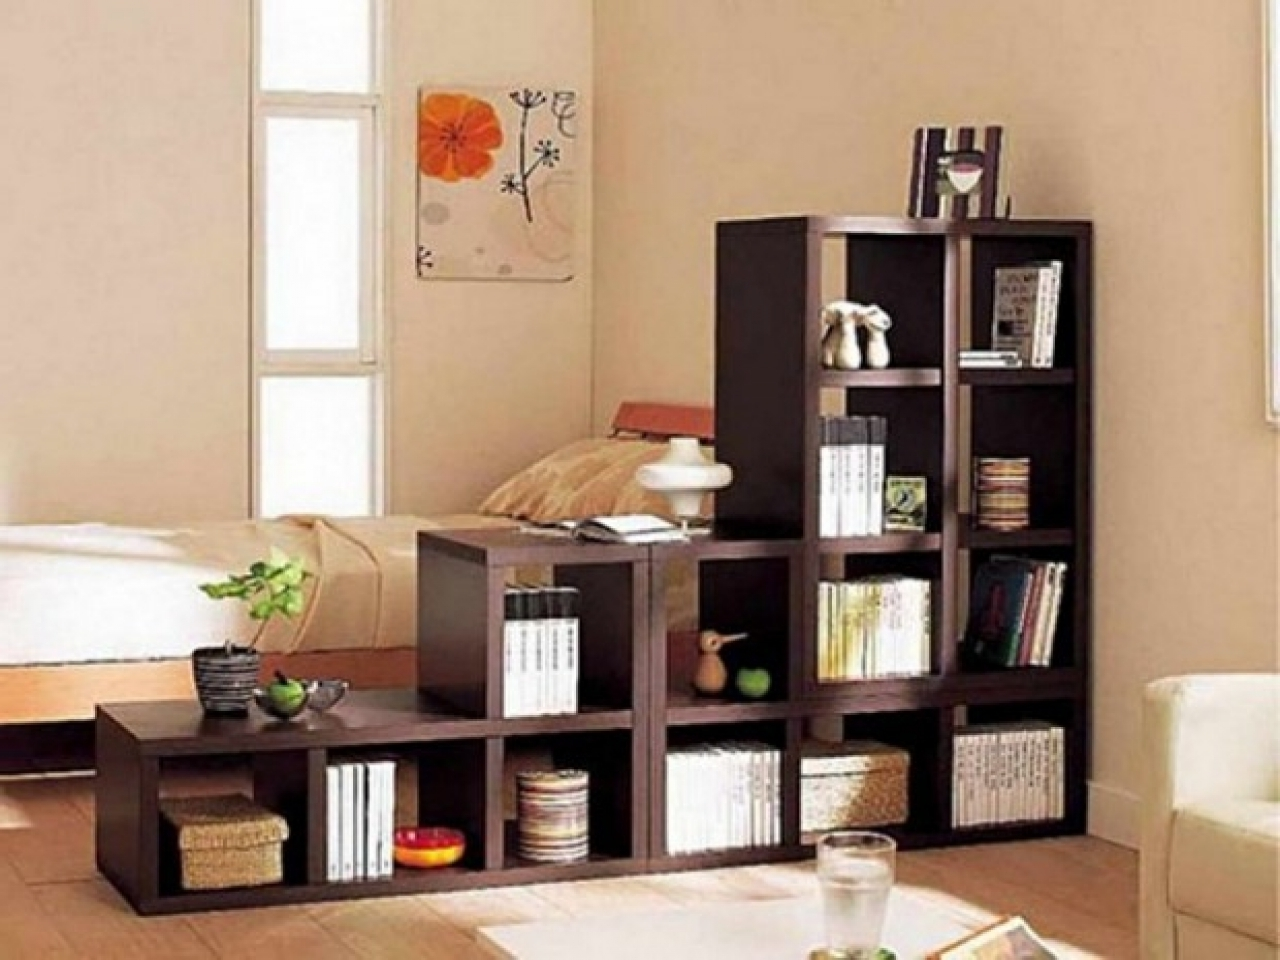 Famous Room Divider Bookcases With Regard To Room Divider With Shelves Ideas Bookshelves Baaf – Surripui (View 7 of 15)